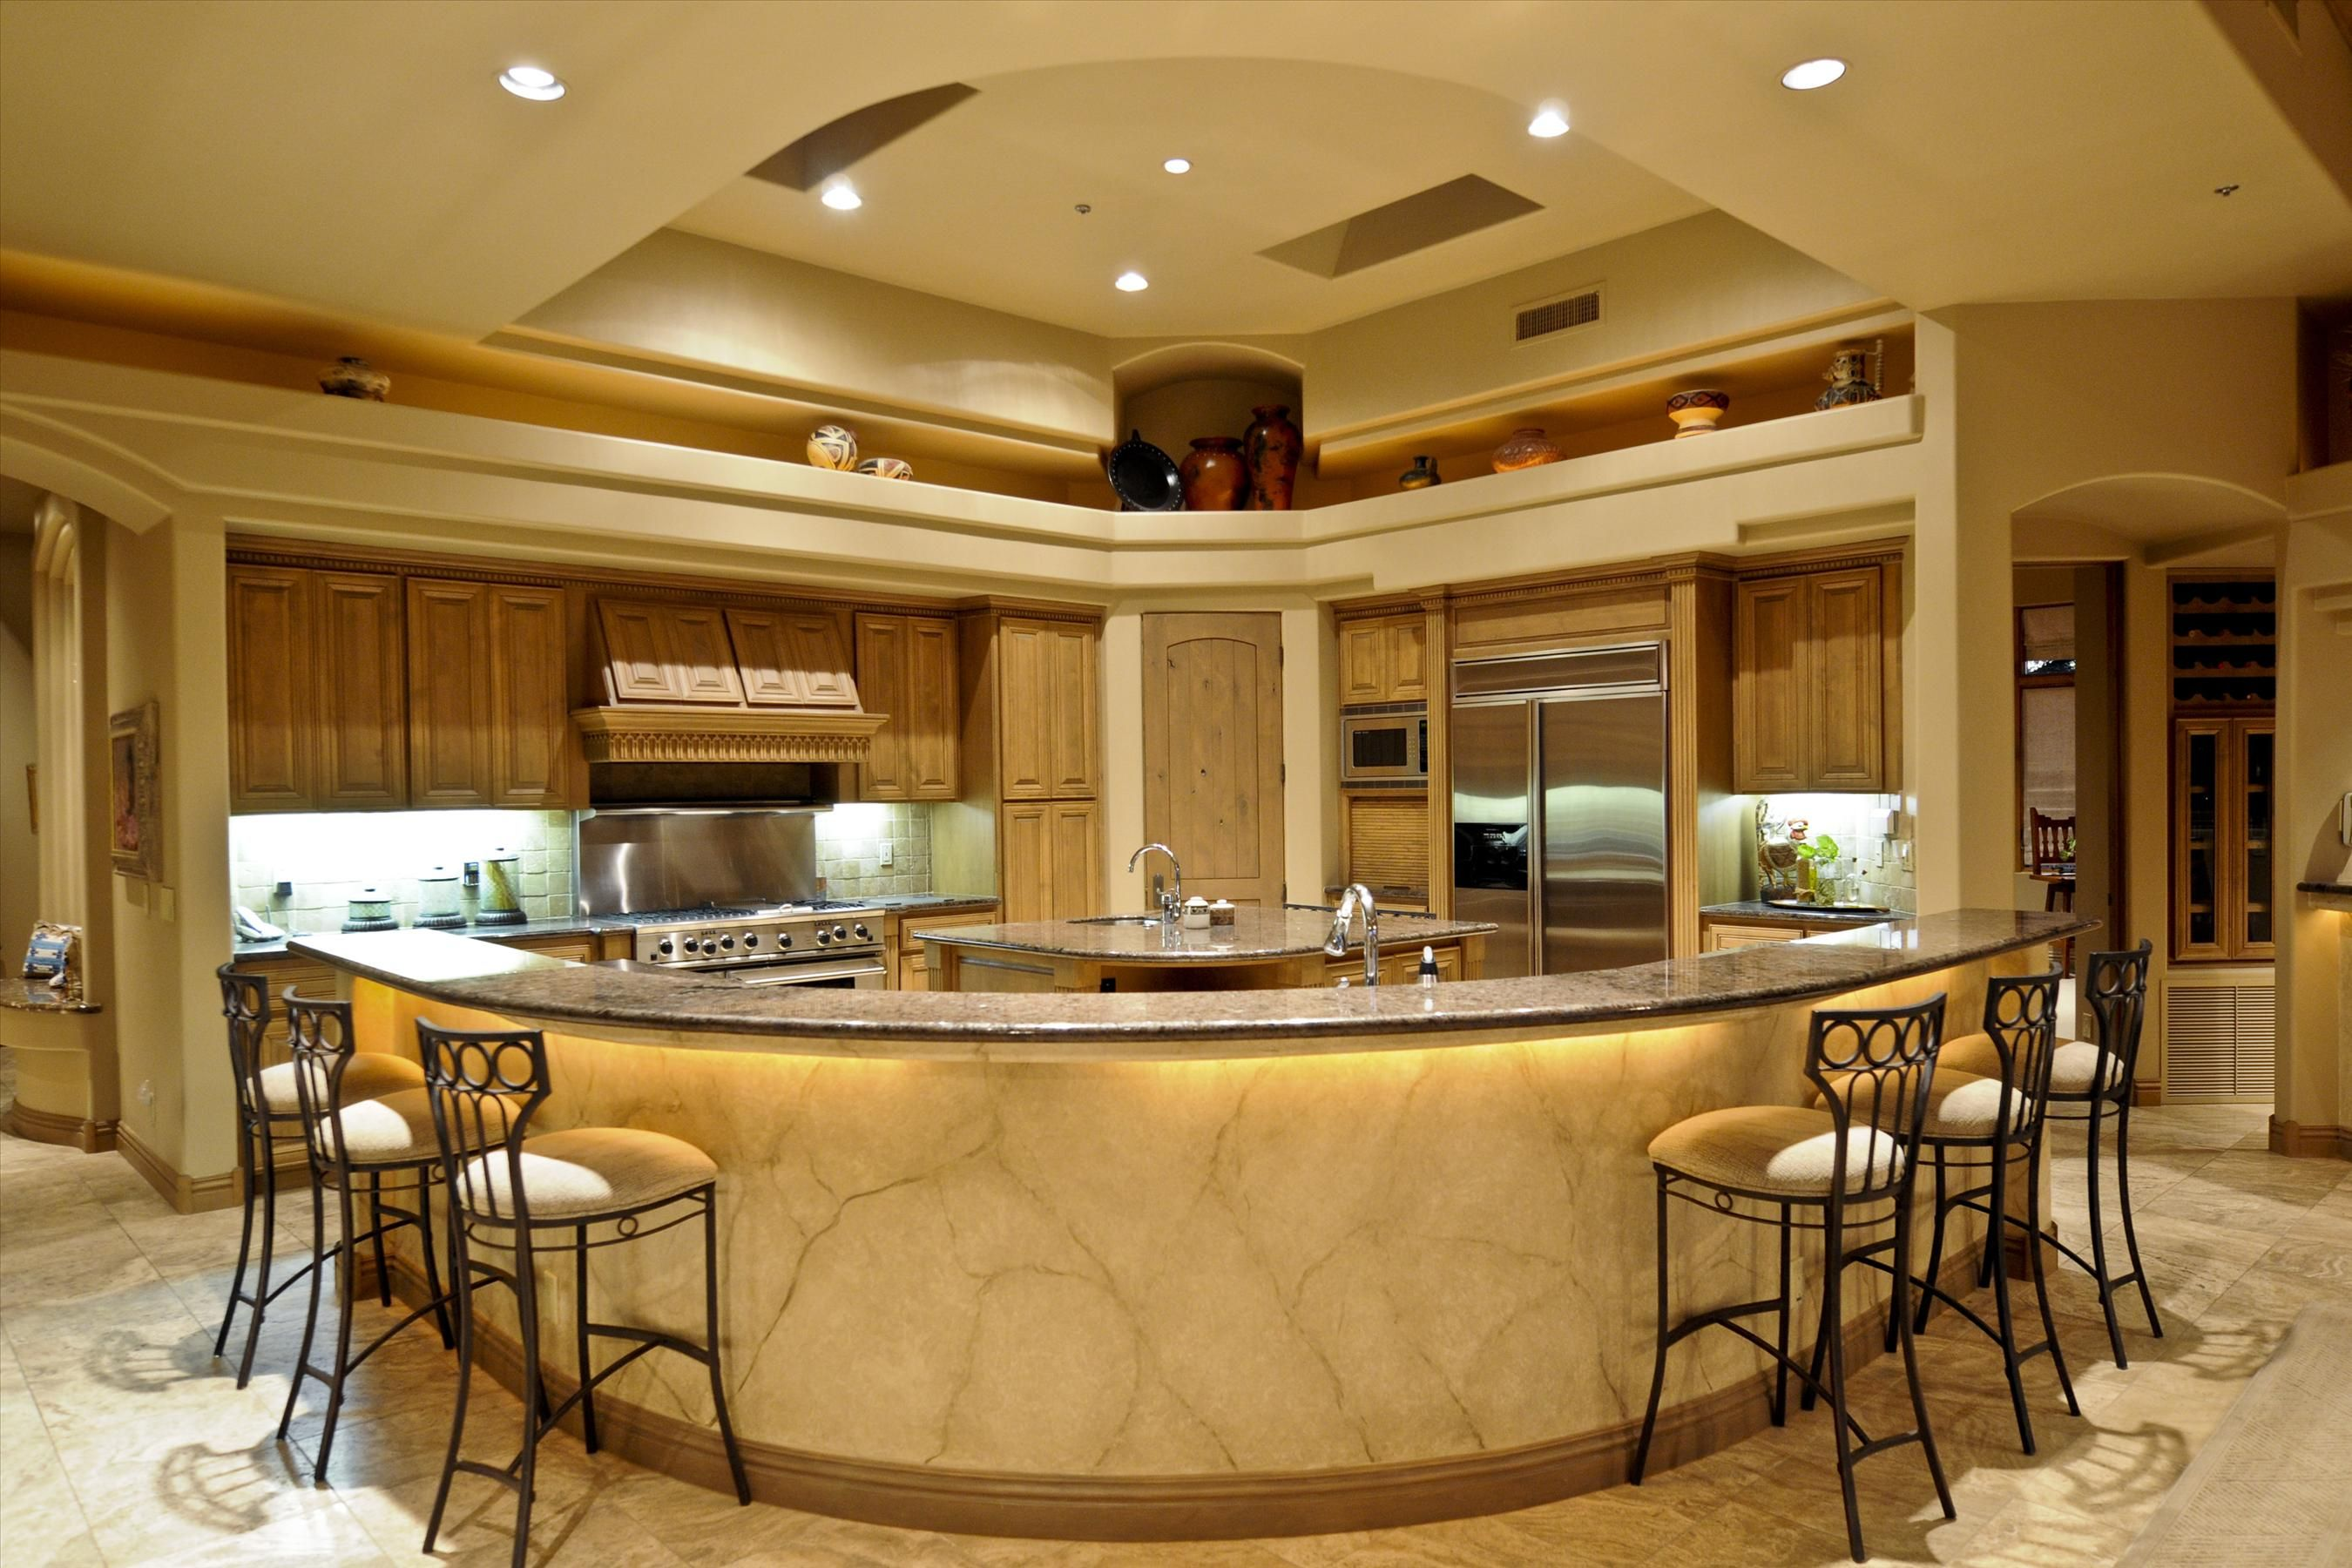 Premier luxury kitchens custom designed and for House kitchen ideas